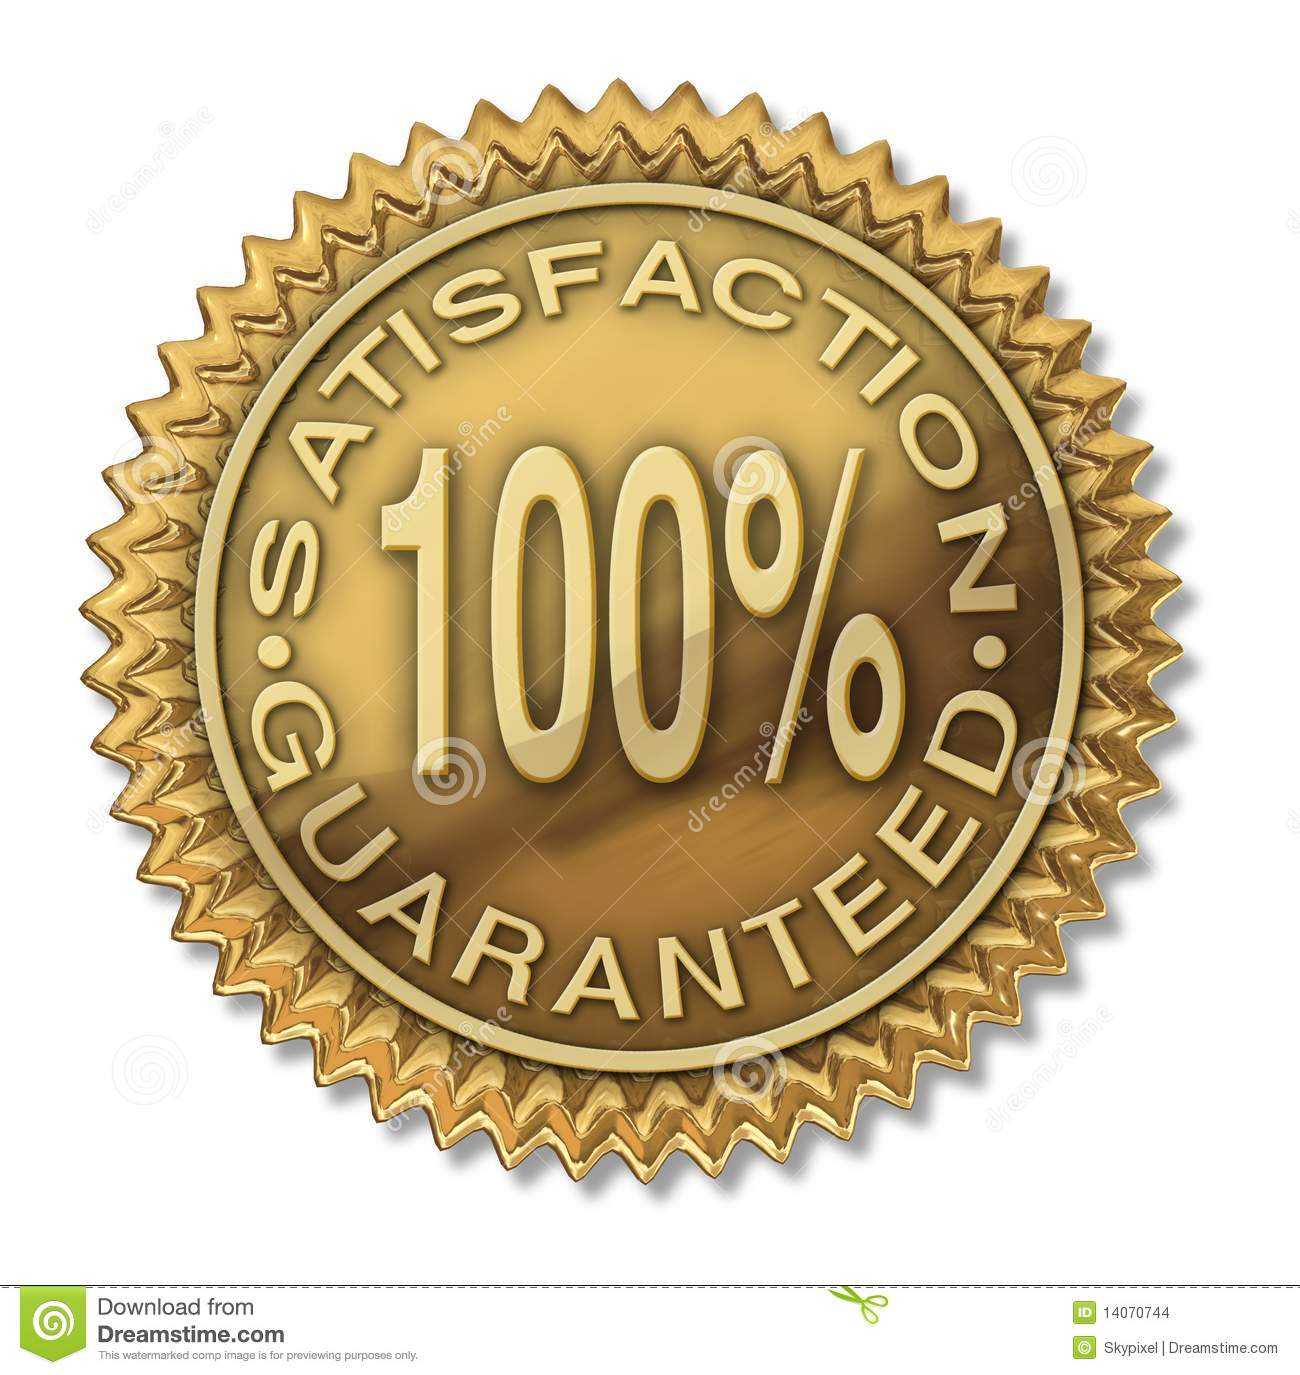 Satisfaction Guaranteed 100 Gold Stamp Illustration 14070744